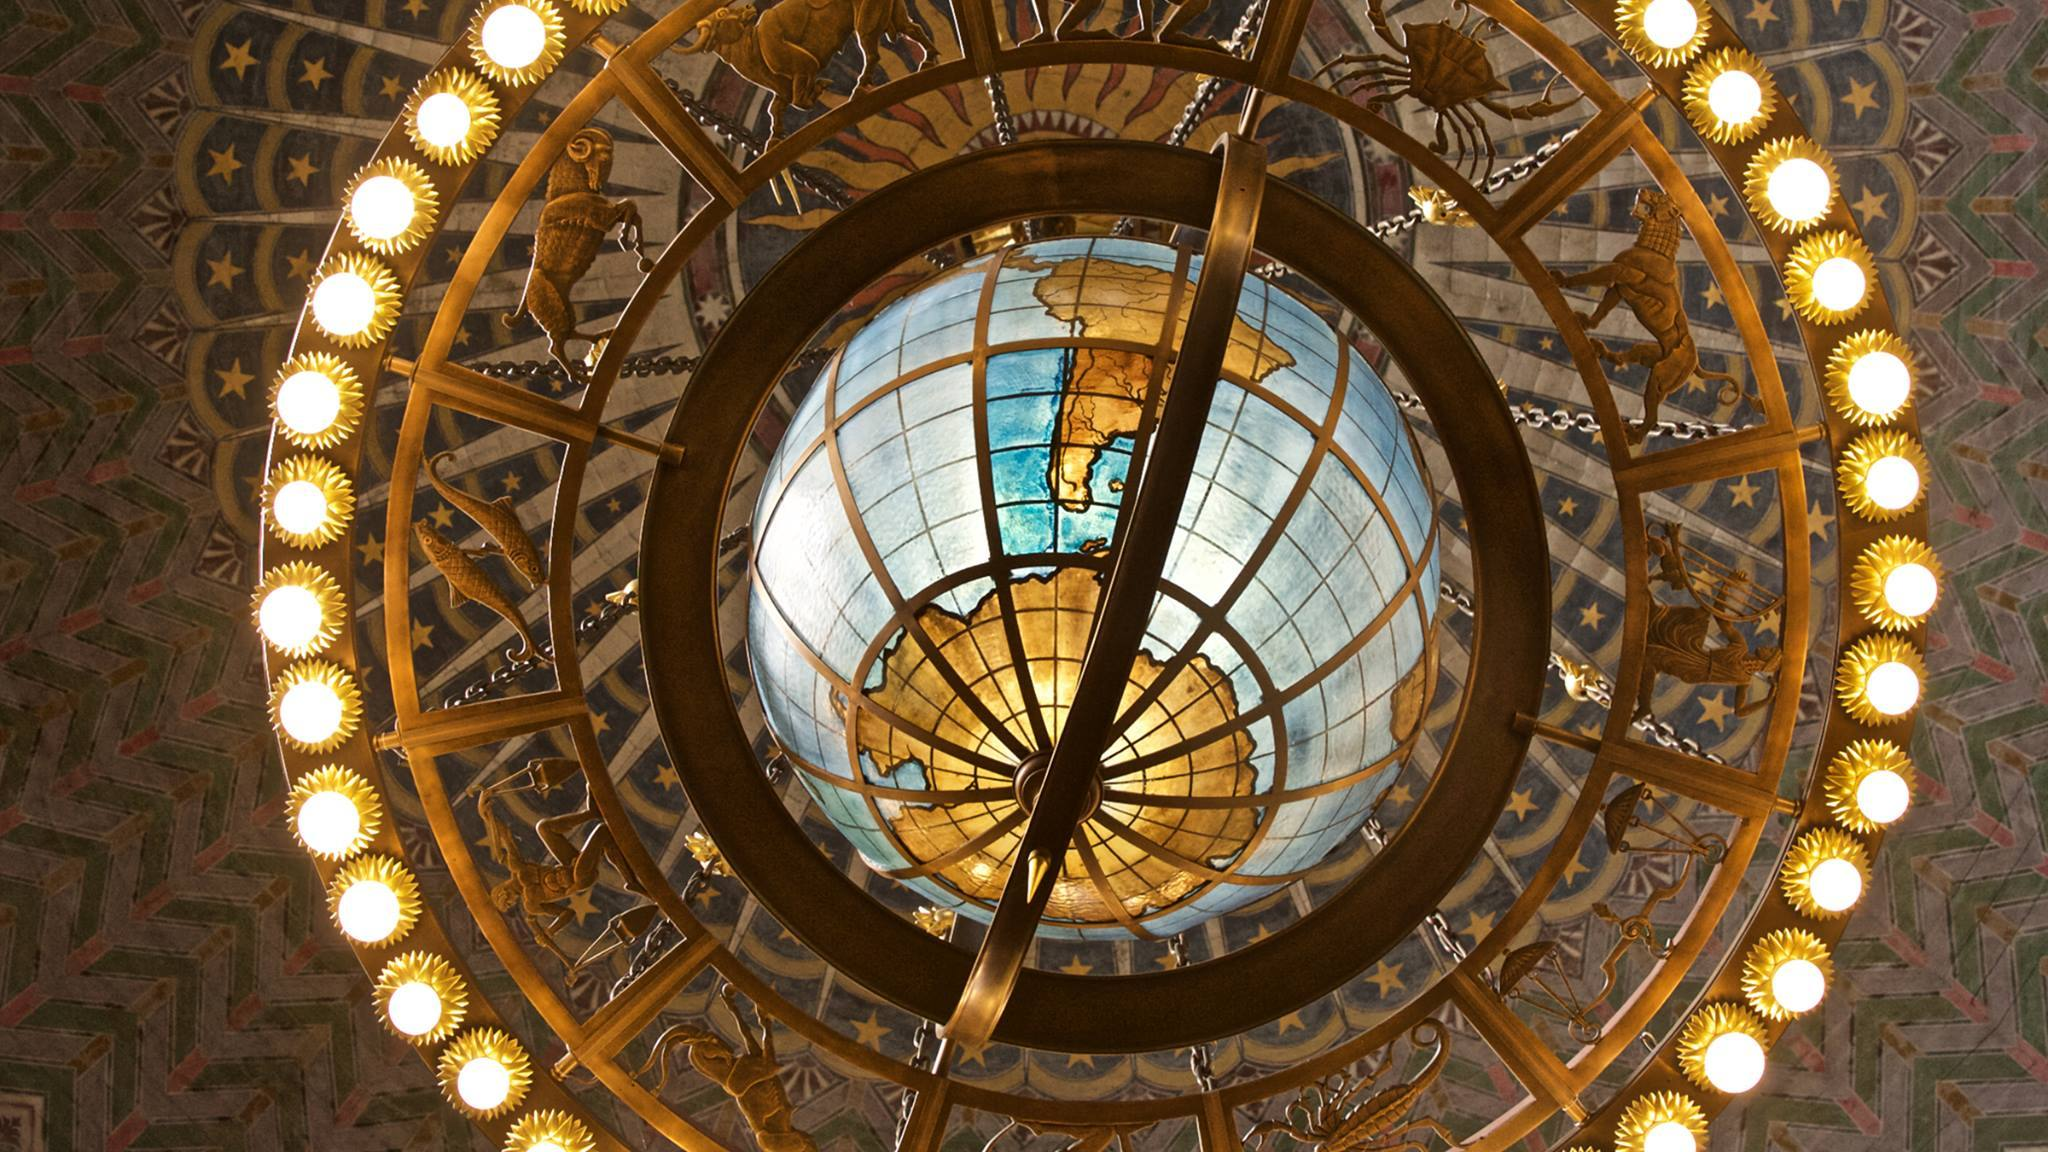 Zodiac Chandelier at the Central Library in DTLA